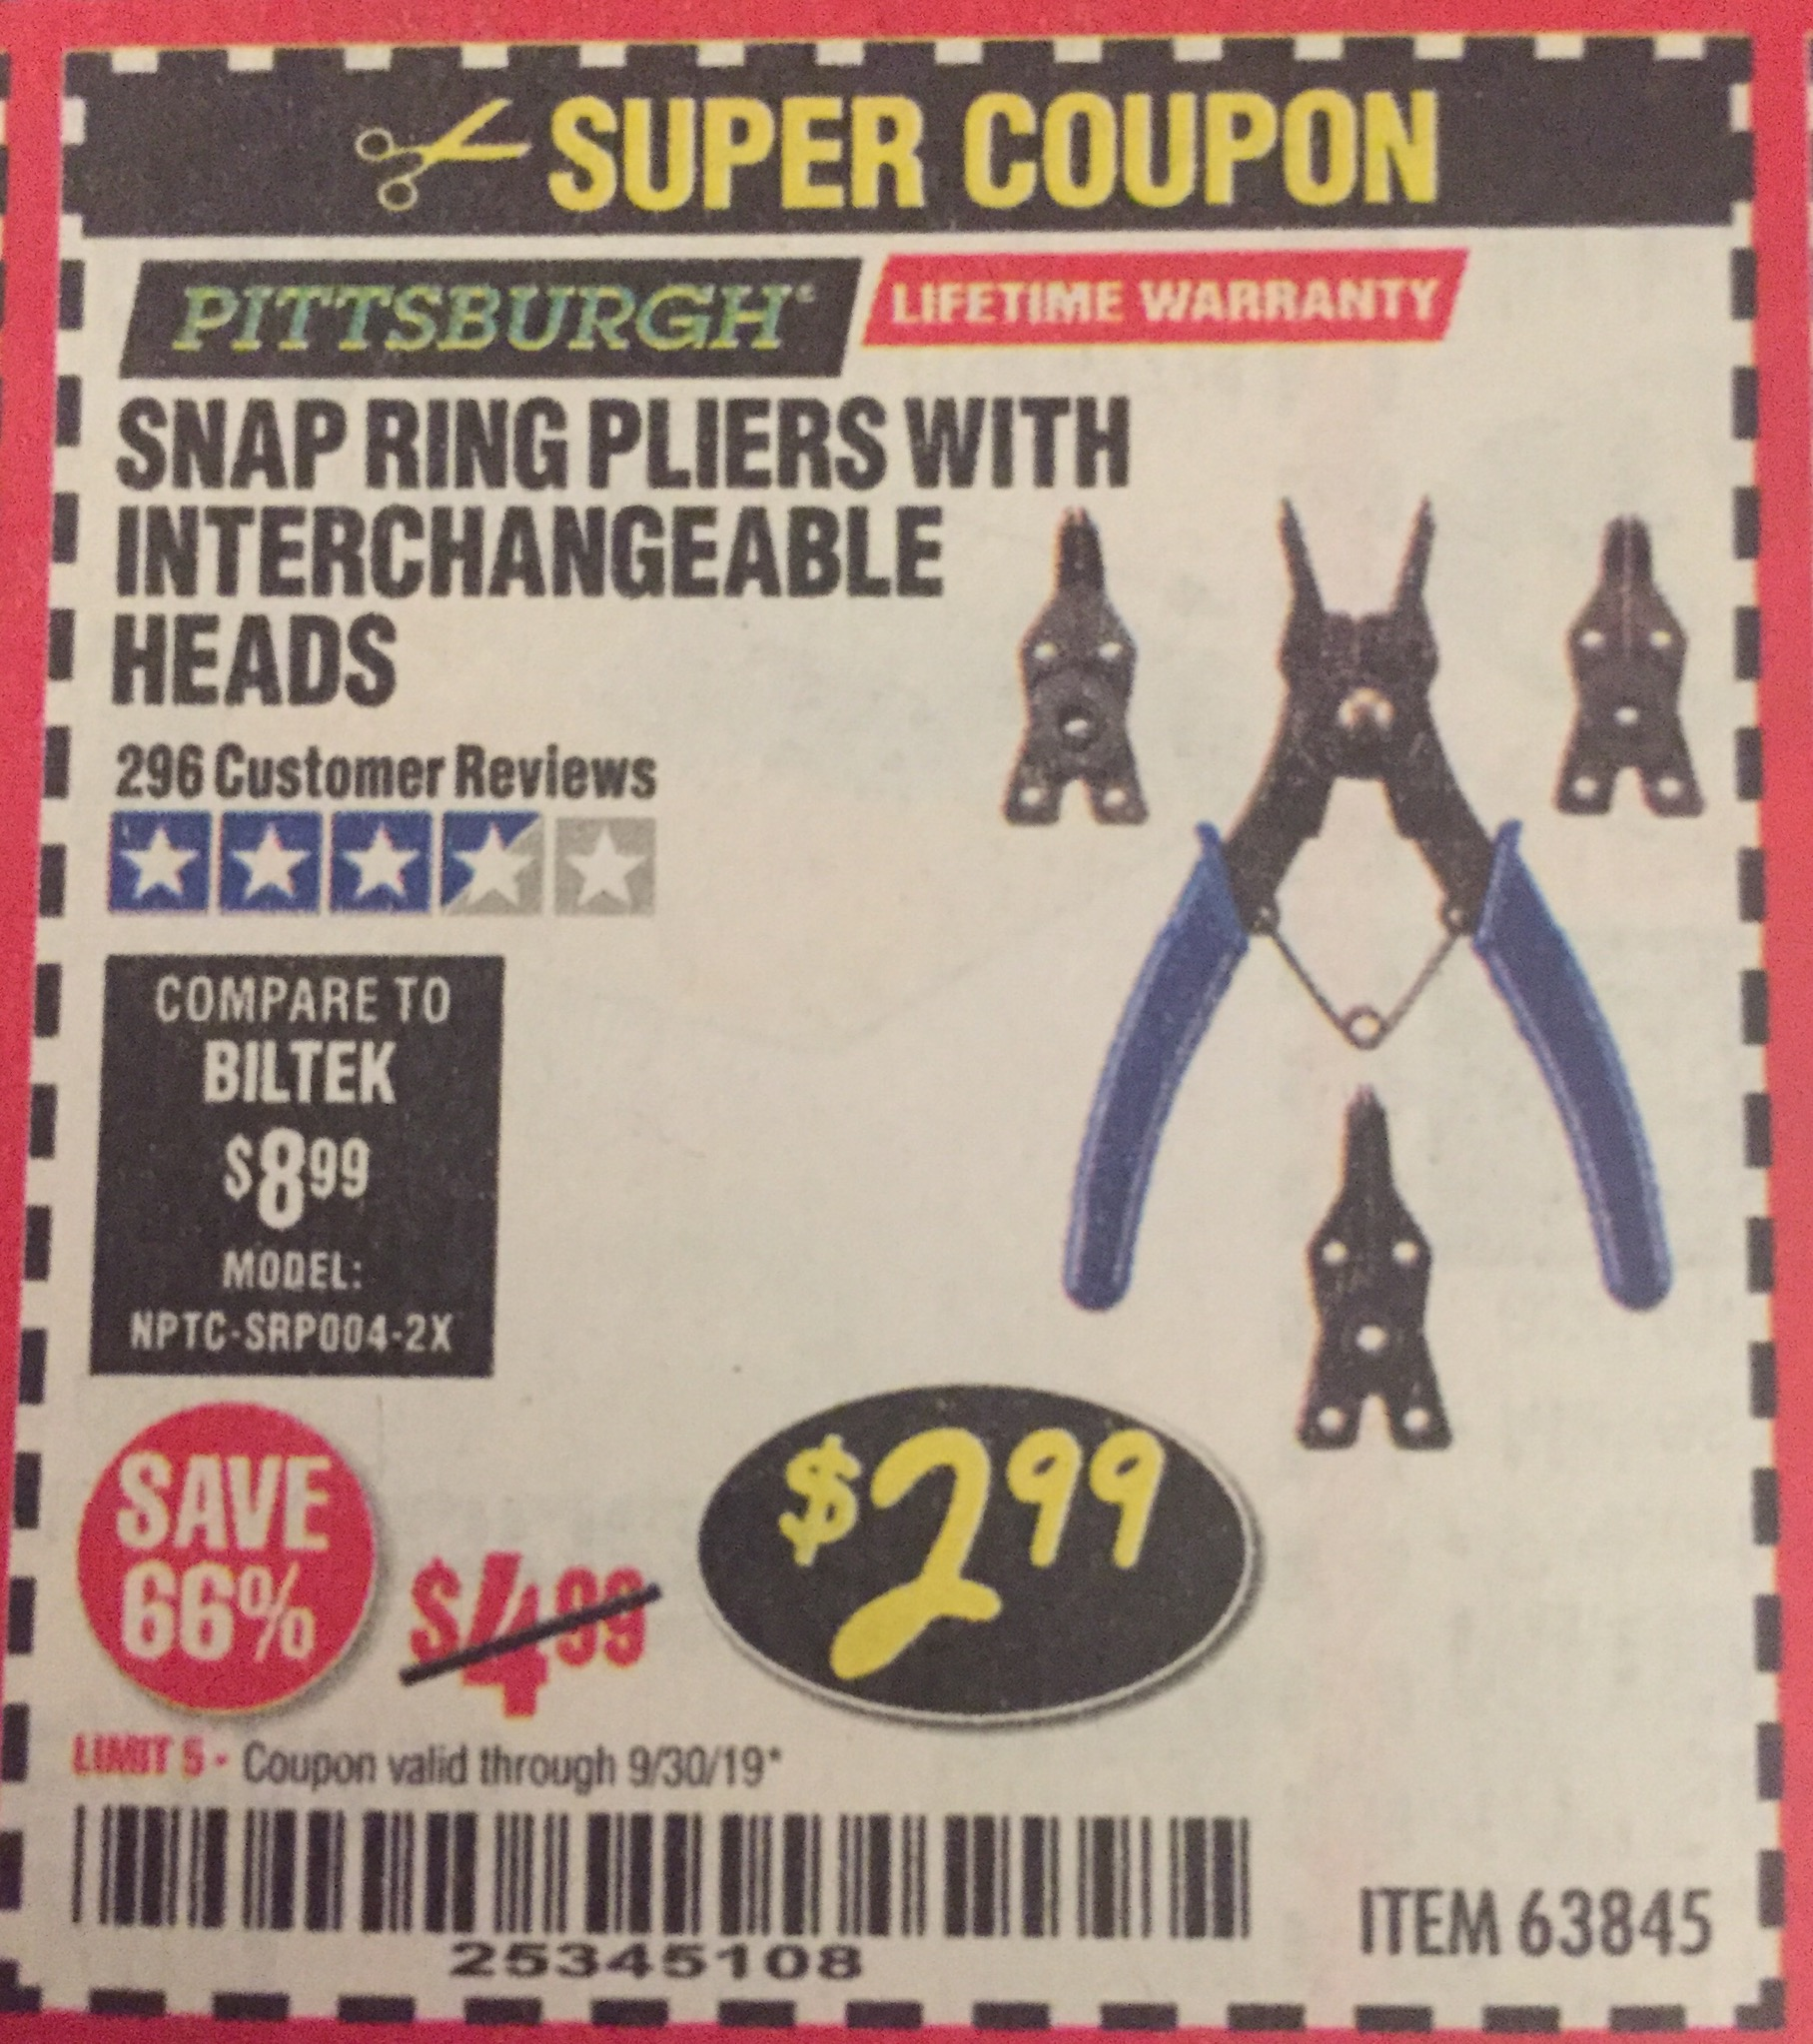 www.hfqpdb.com - SNAP RING PLIERS WITH INTERCHANGEABLE HEADS Lot No. 63845